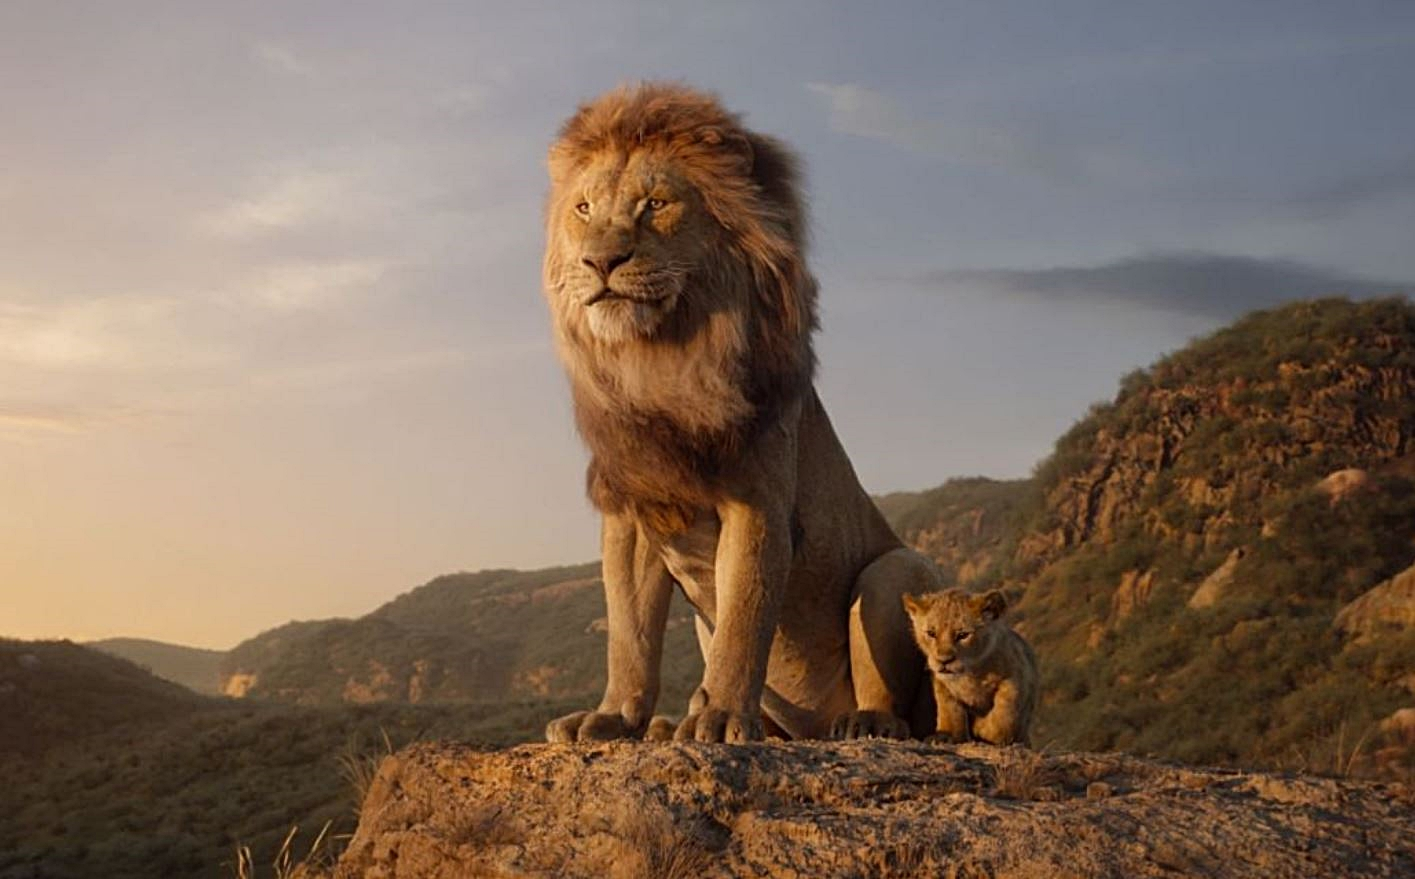 Original 'Lion King' animator criticises Disney remake